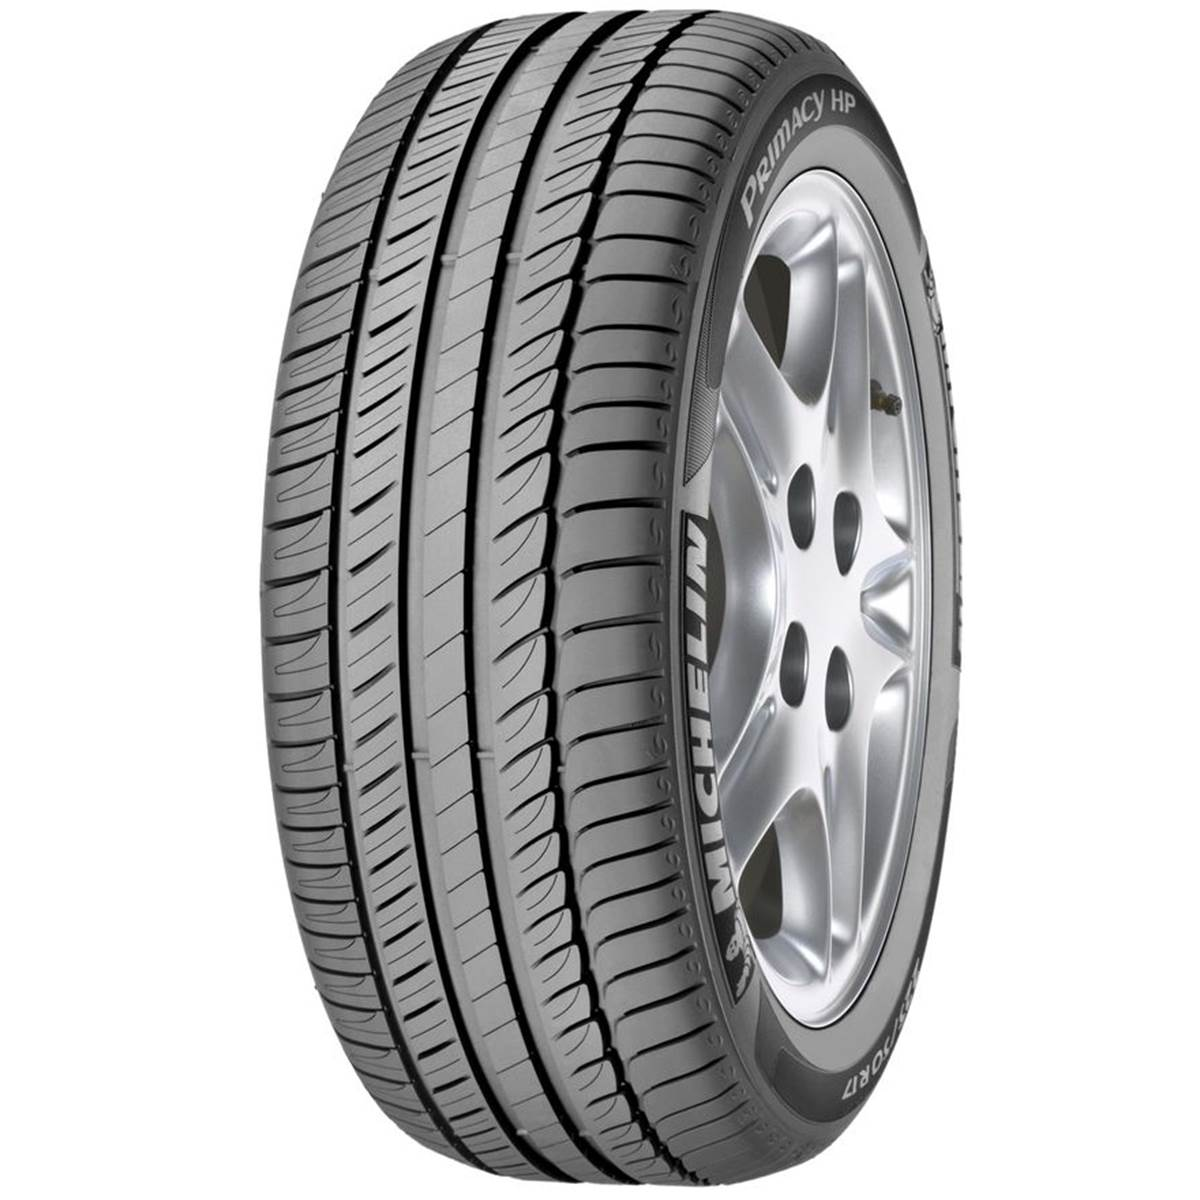 Pneu Michelin 205/55R16 91V Primacy Hp